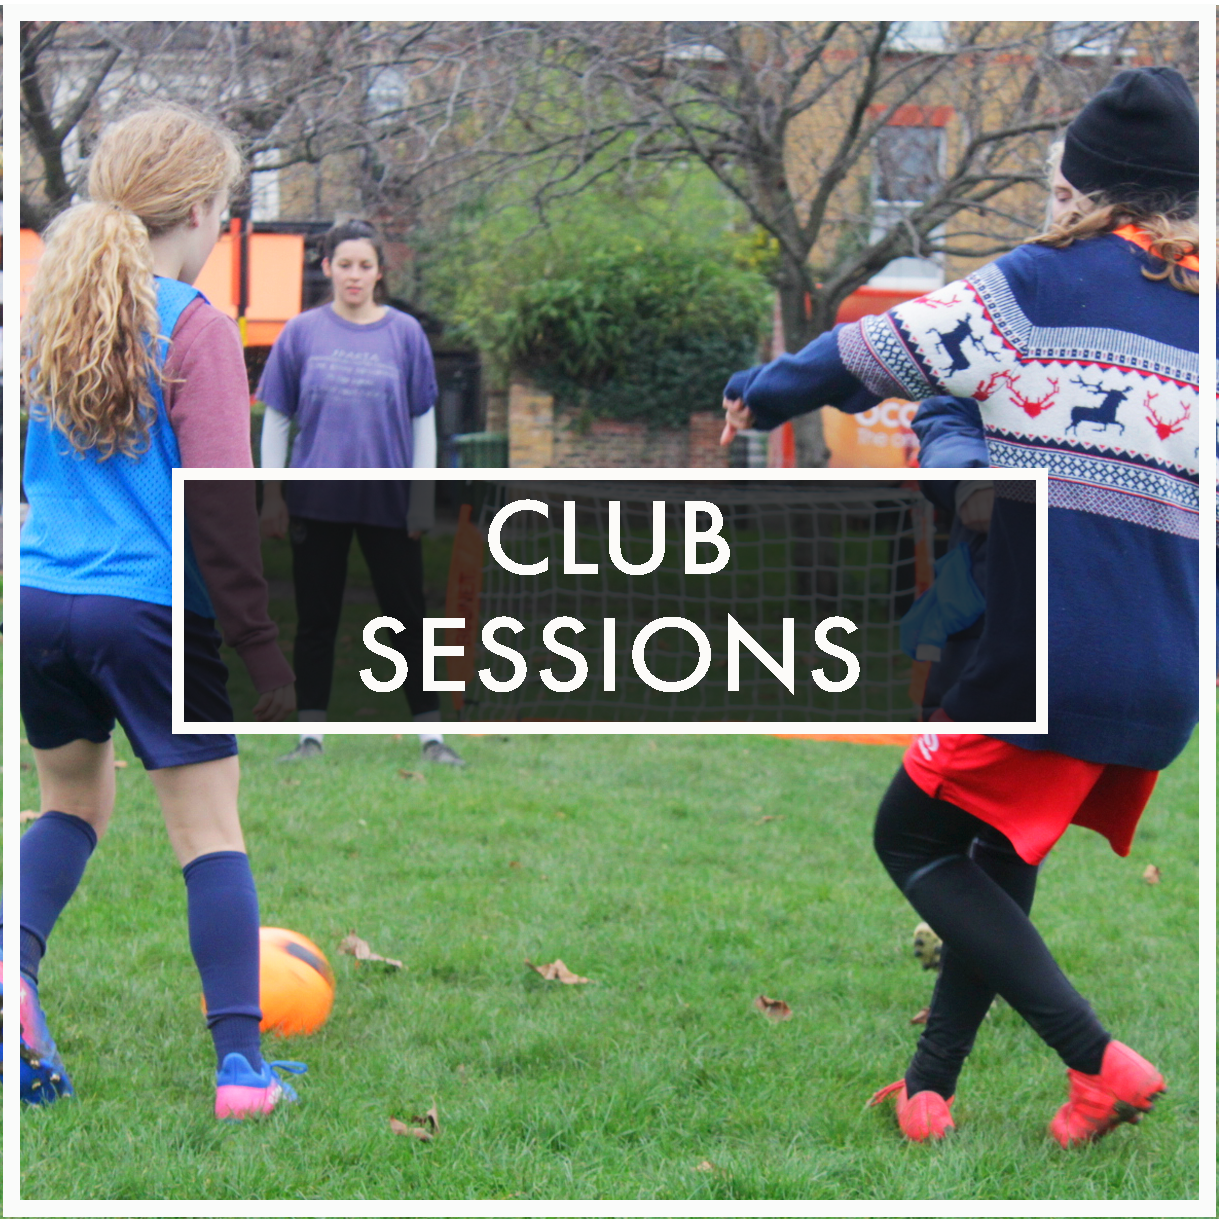 BECOME A FOOTBALLER AND A LEADER.   Training sessions  every week  across various  locations in South London  Open to  all   abilities  and experience levels  Ages  6 to 18  are welcome